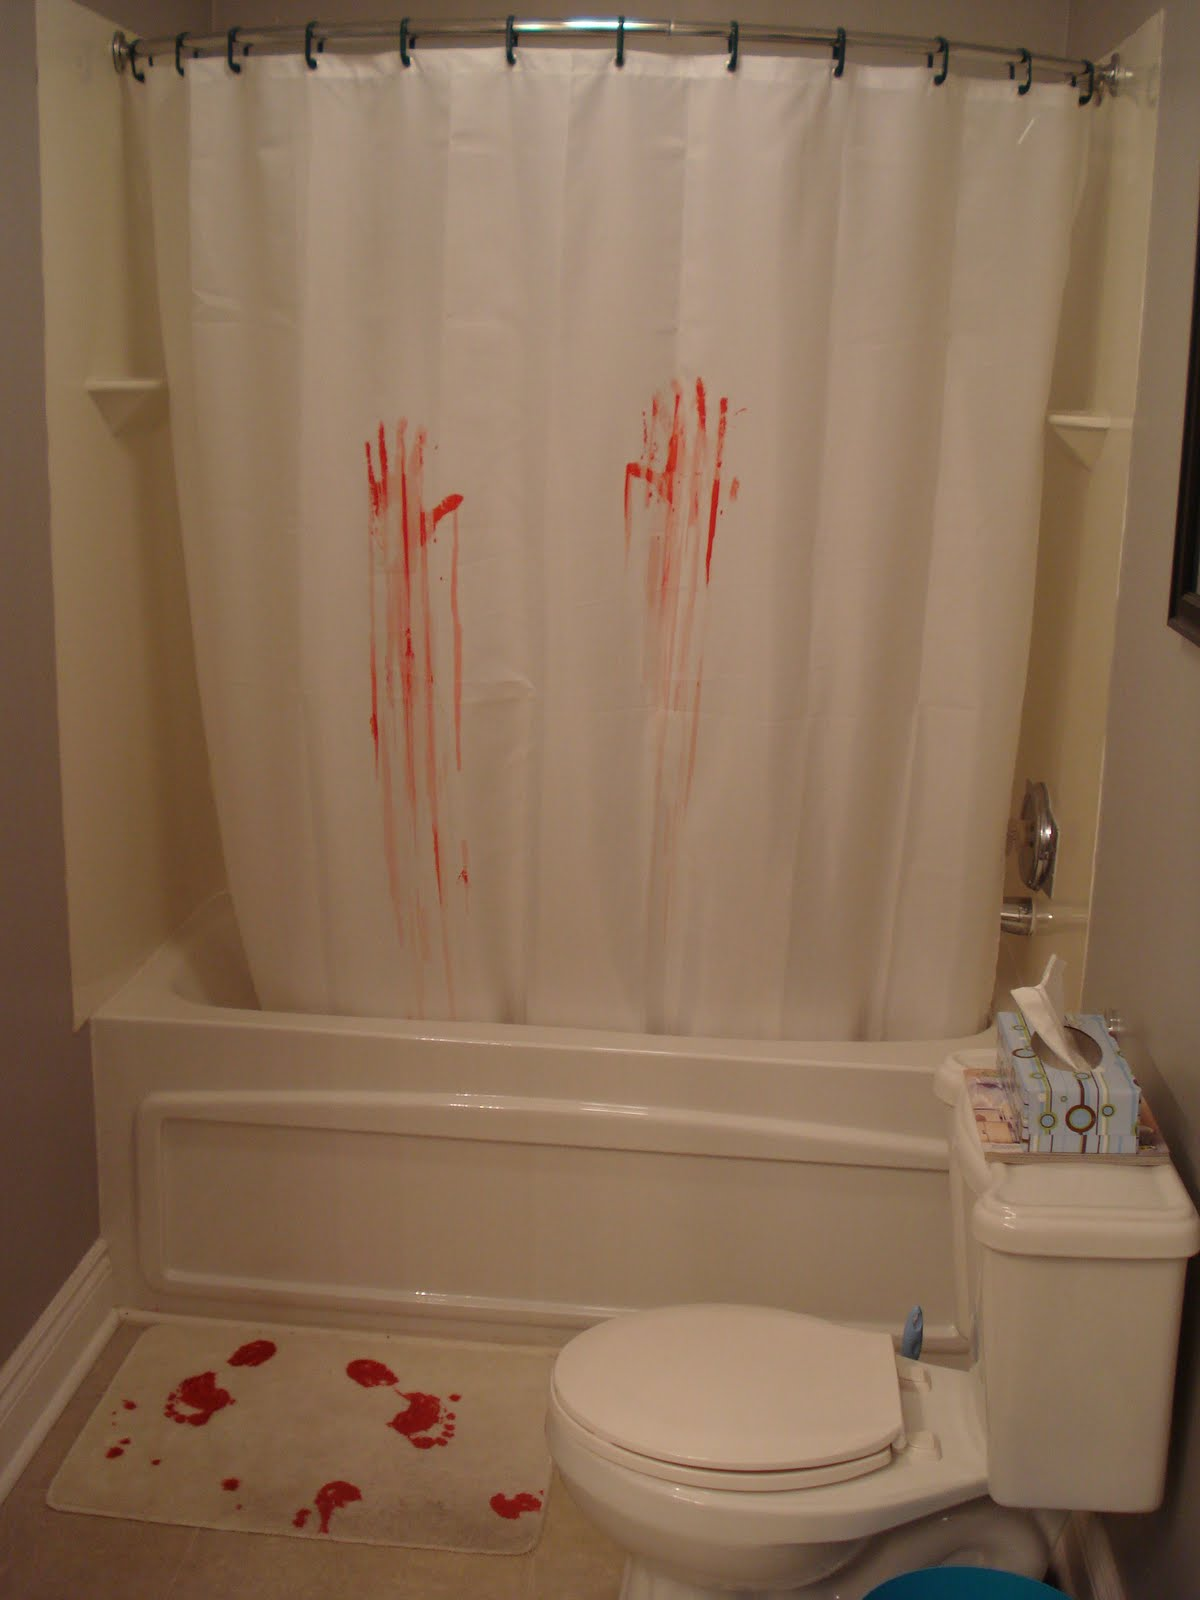 Psycho Bathroom Redux: A Grim Failure .